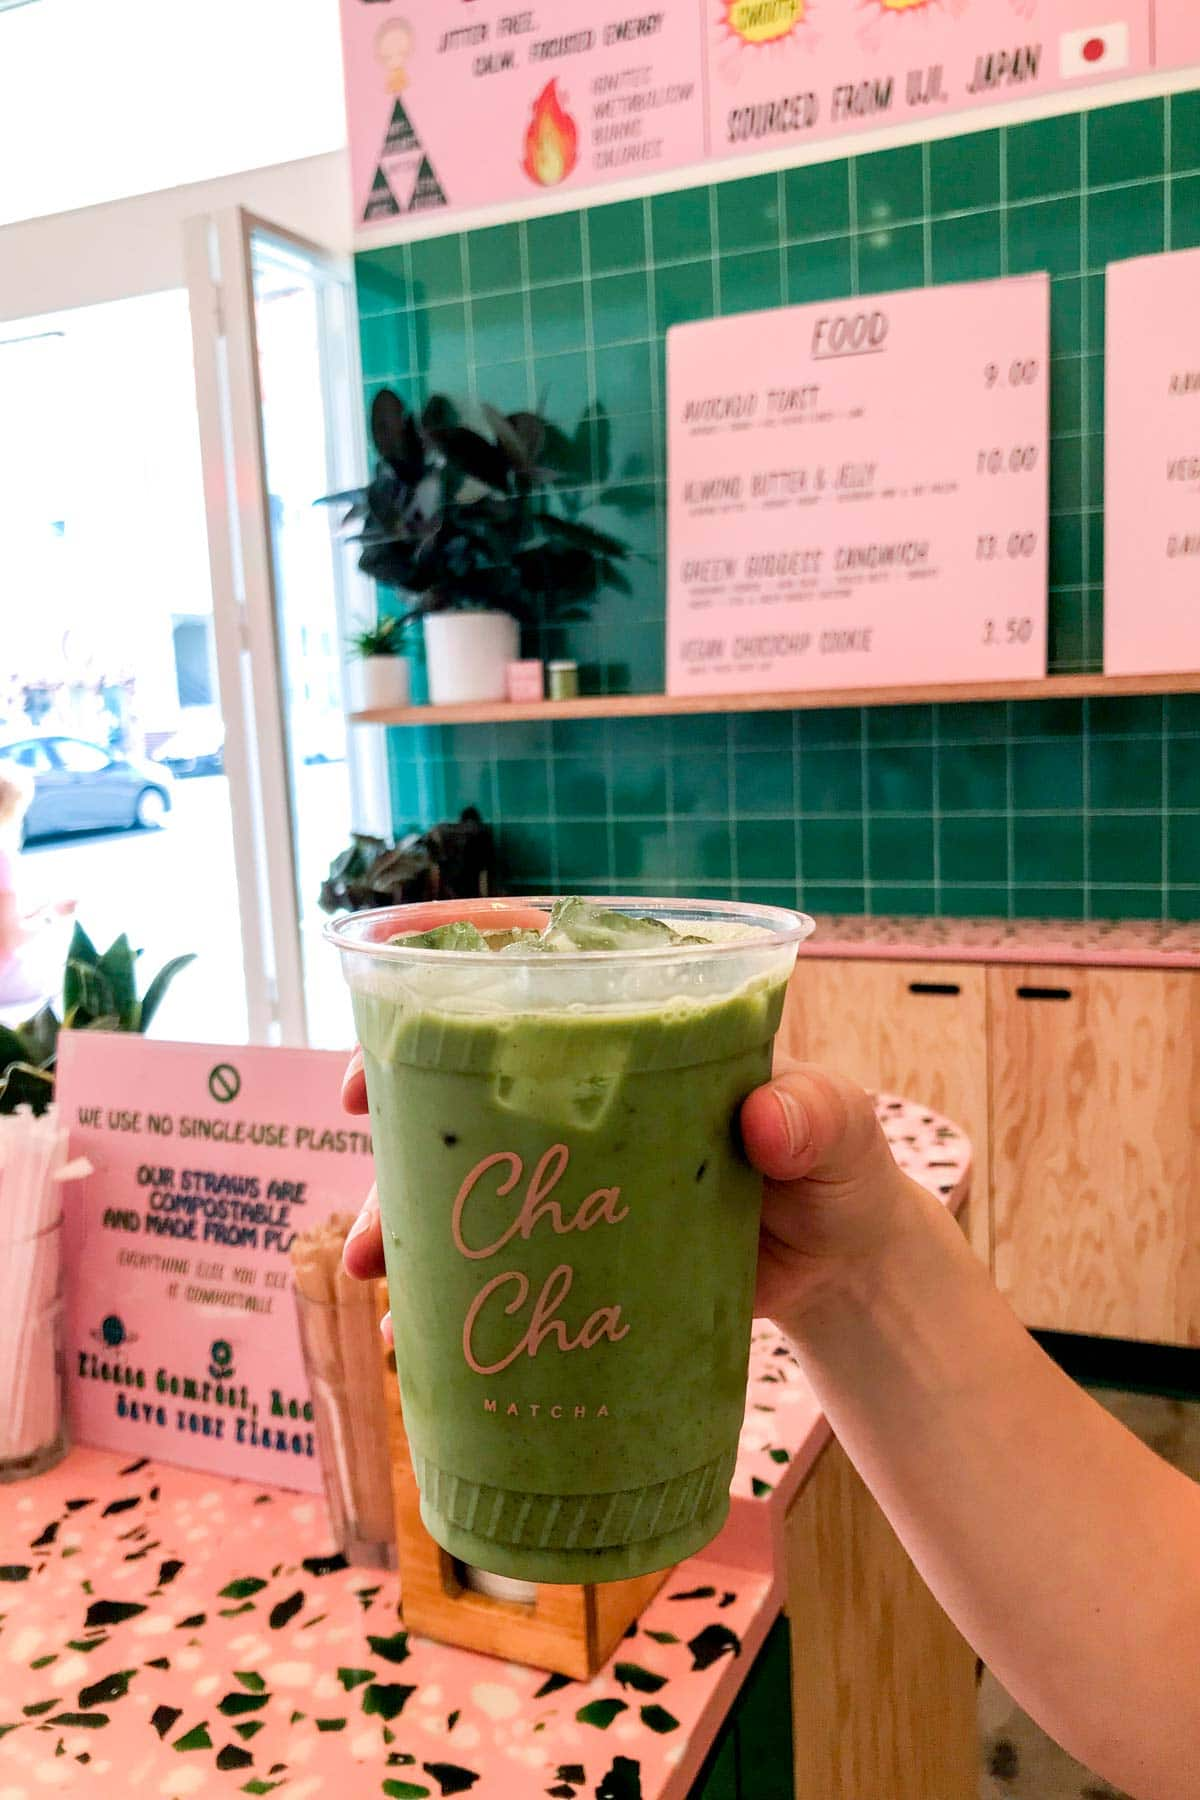 A cup of tea from Cha Cha Matcha